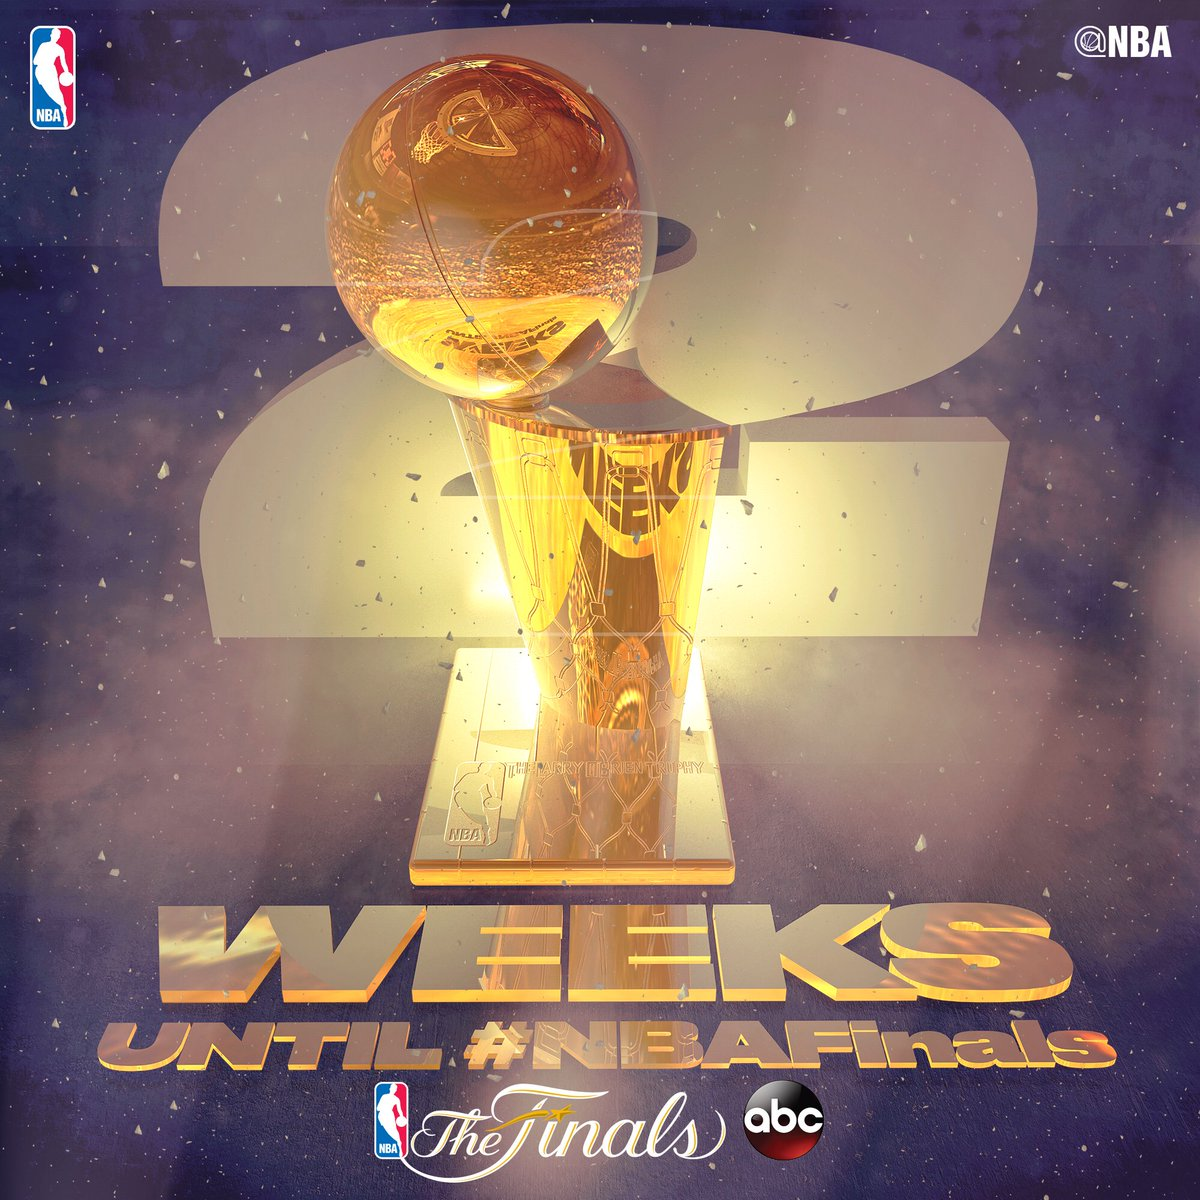 The 2017 #NBAFinals tips off in TWO WEEKS... June 1st on ABC! 🏆 #ThisIsWhyWePlay